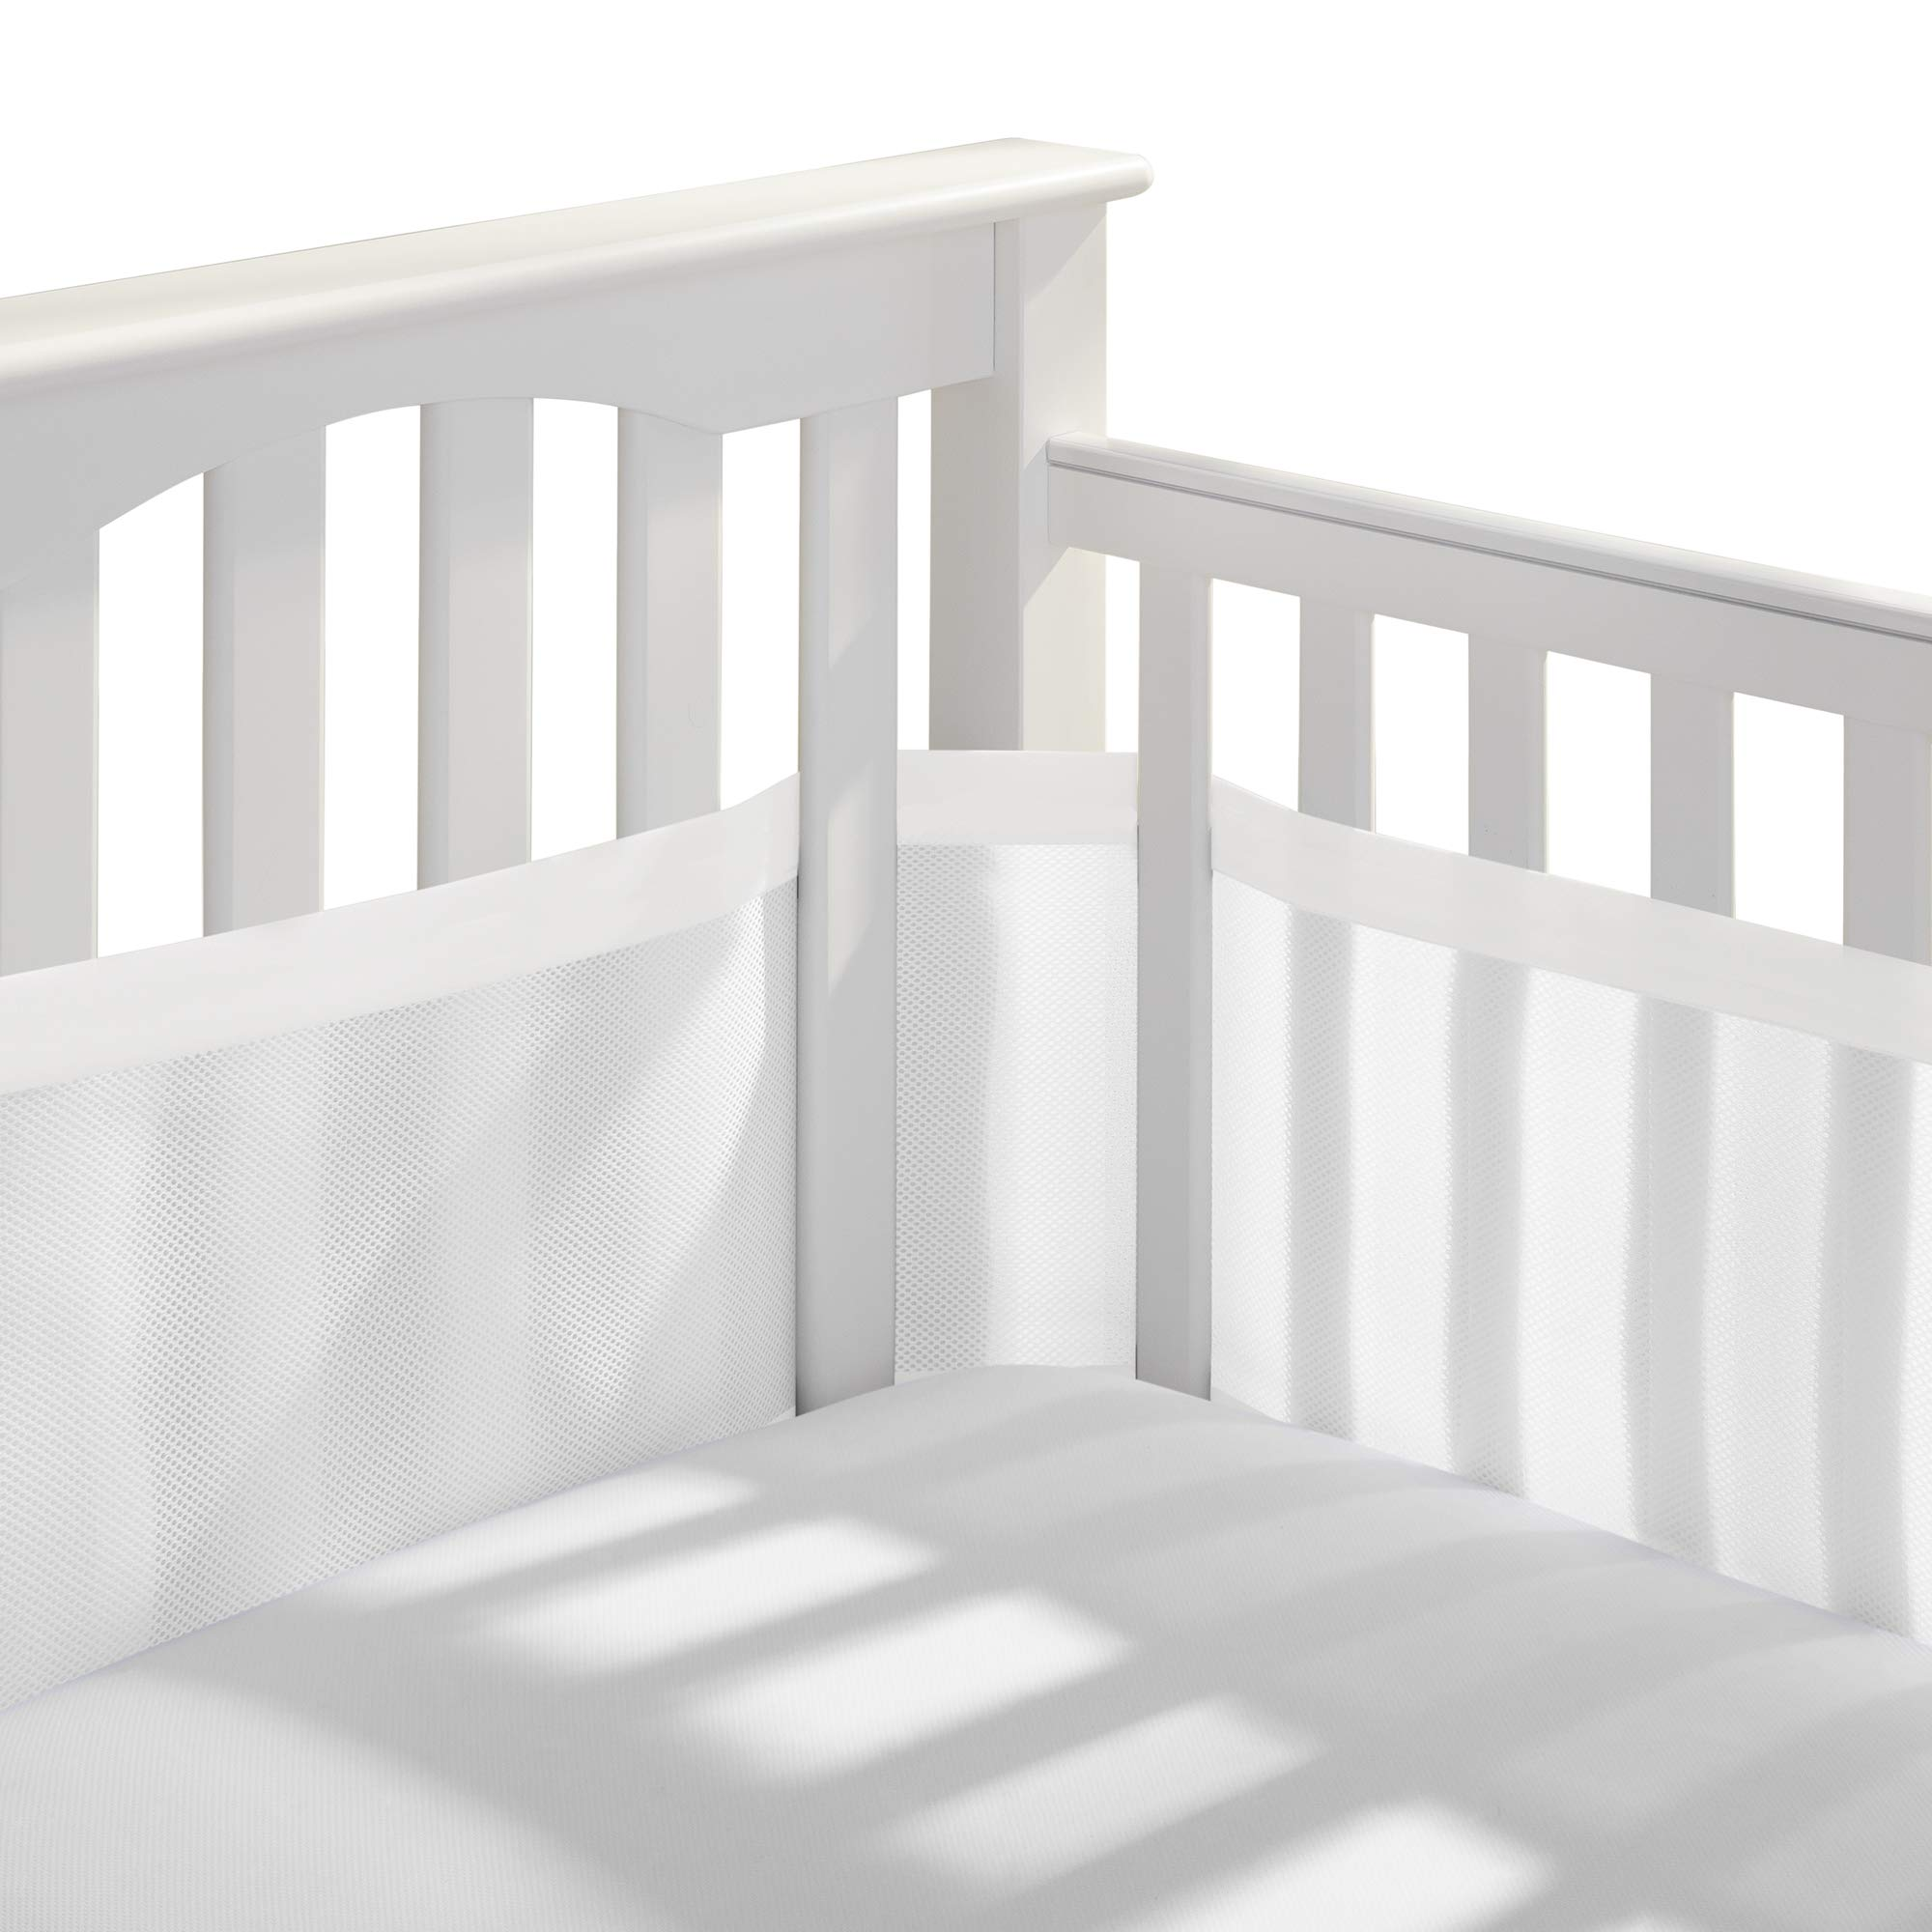 BreathableBaby Deluxe Patented, Safer for Baby, Anti-Bumper, Non-Padded, Breathable Mesh Crib Liner - White and Muslin Trim by BreathableBaby